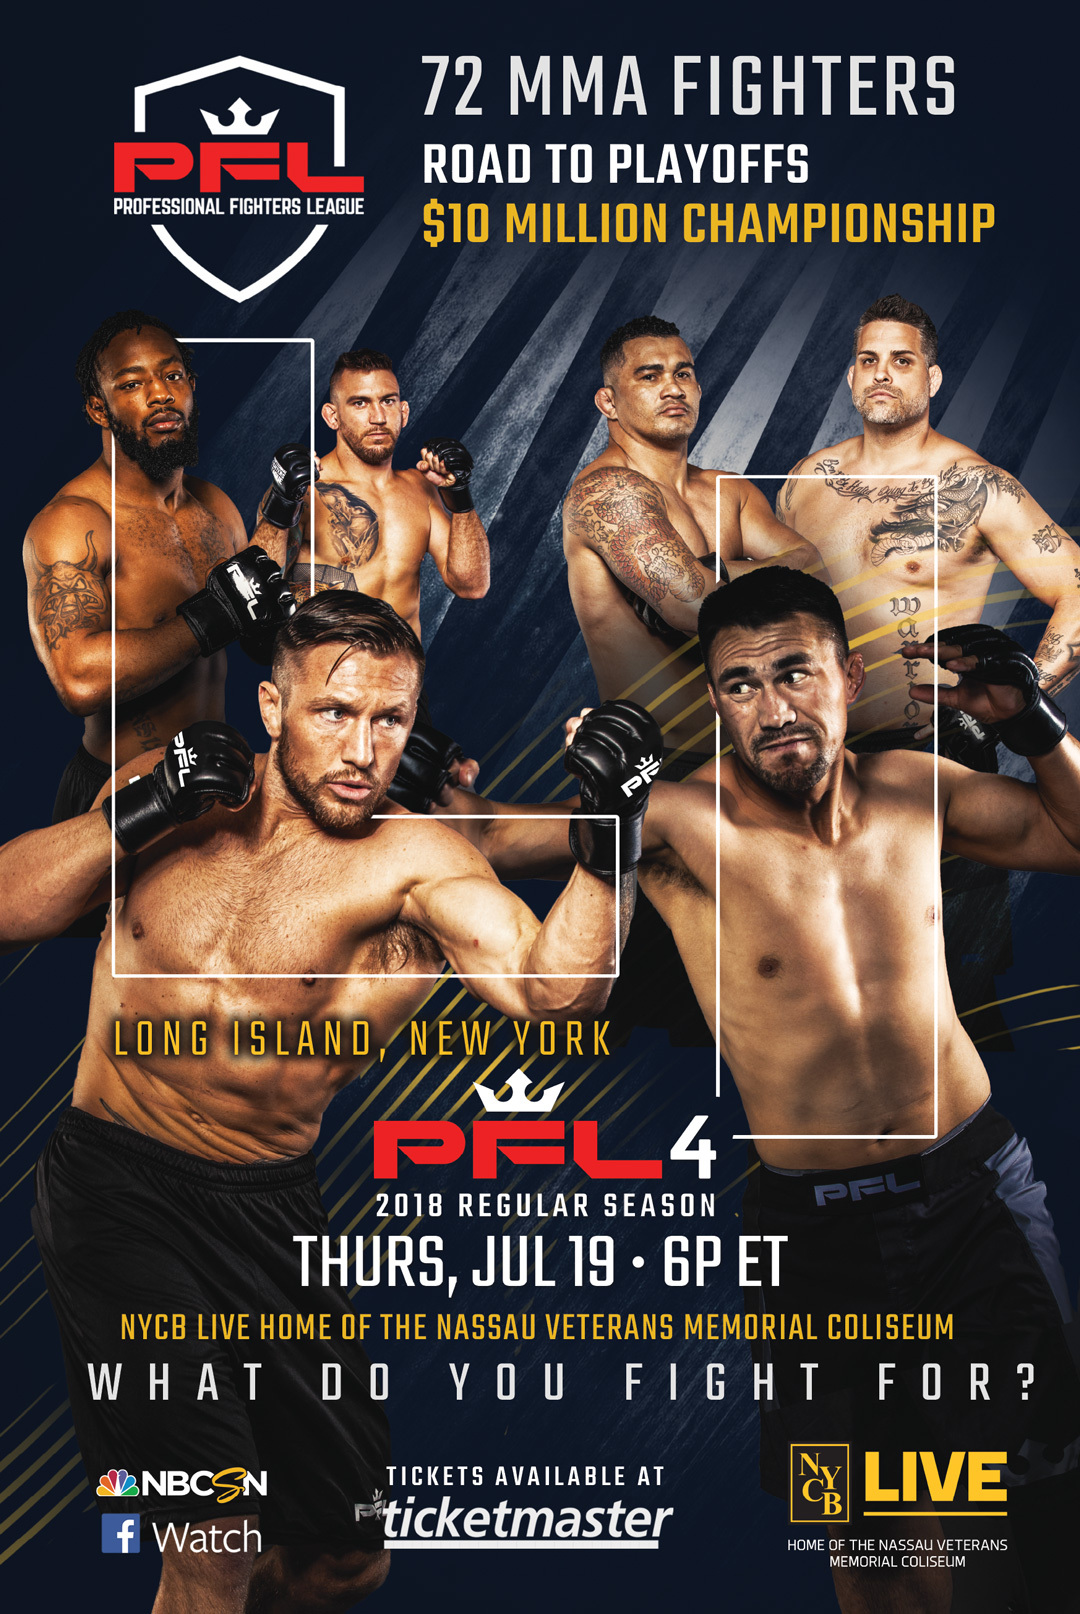 Professional Fighters League (PFL) Featherweights and Heavyweights